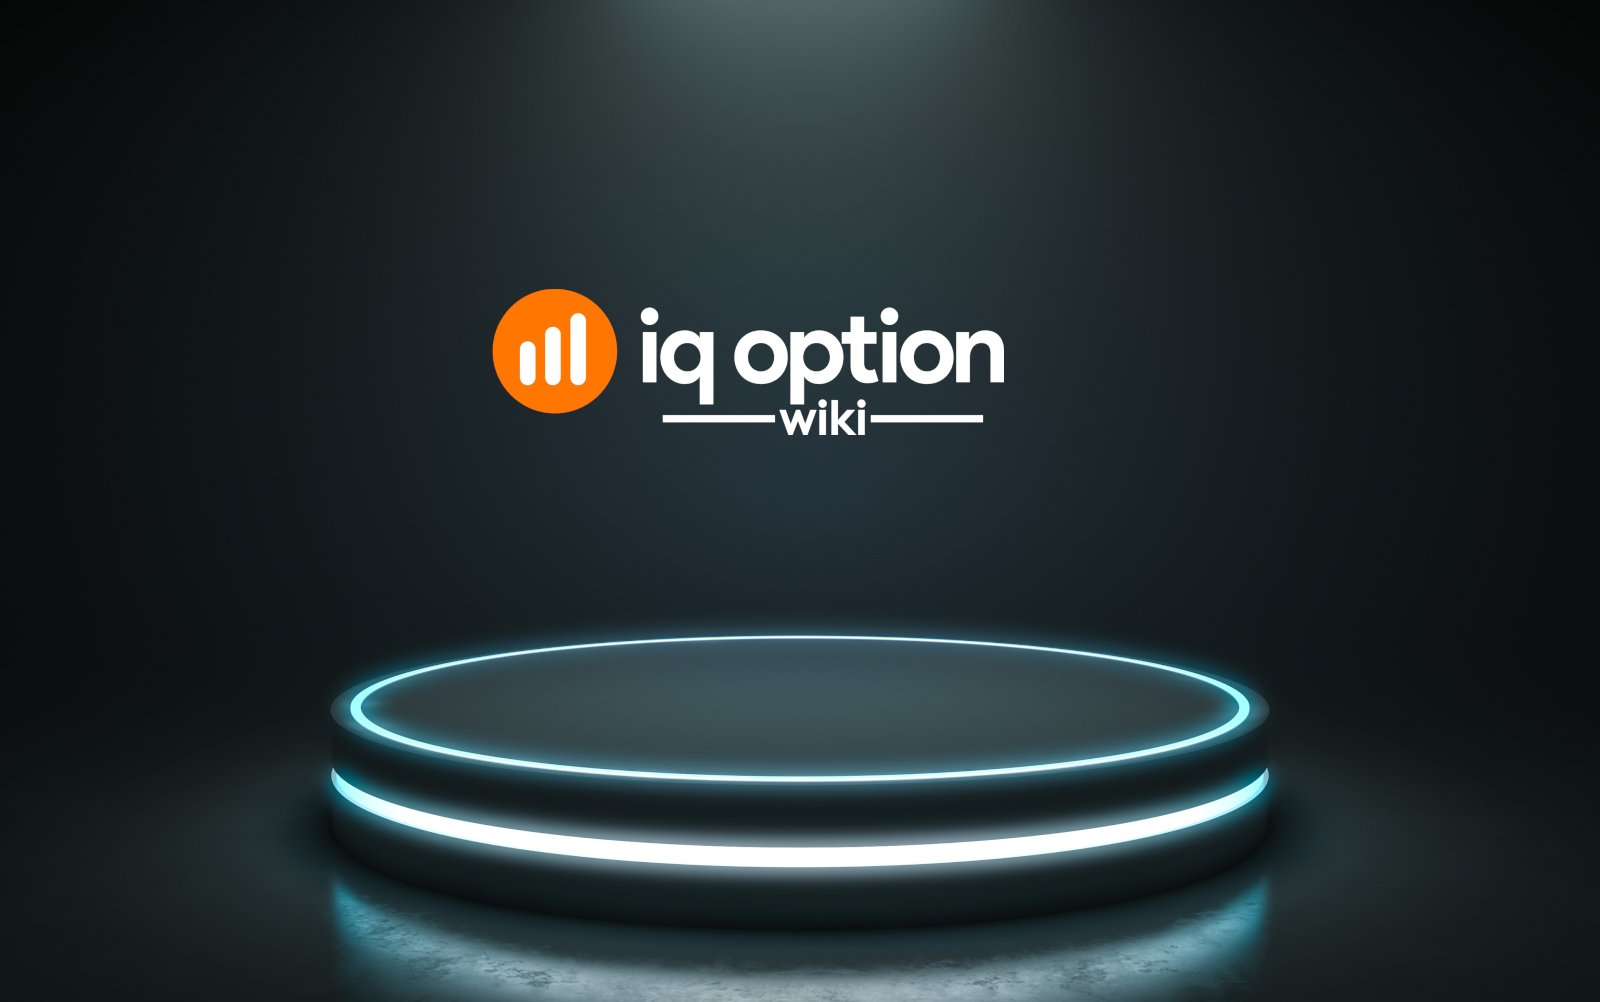 can iq option be trusted